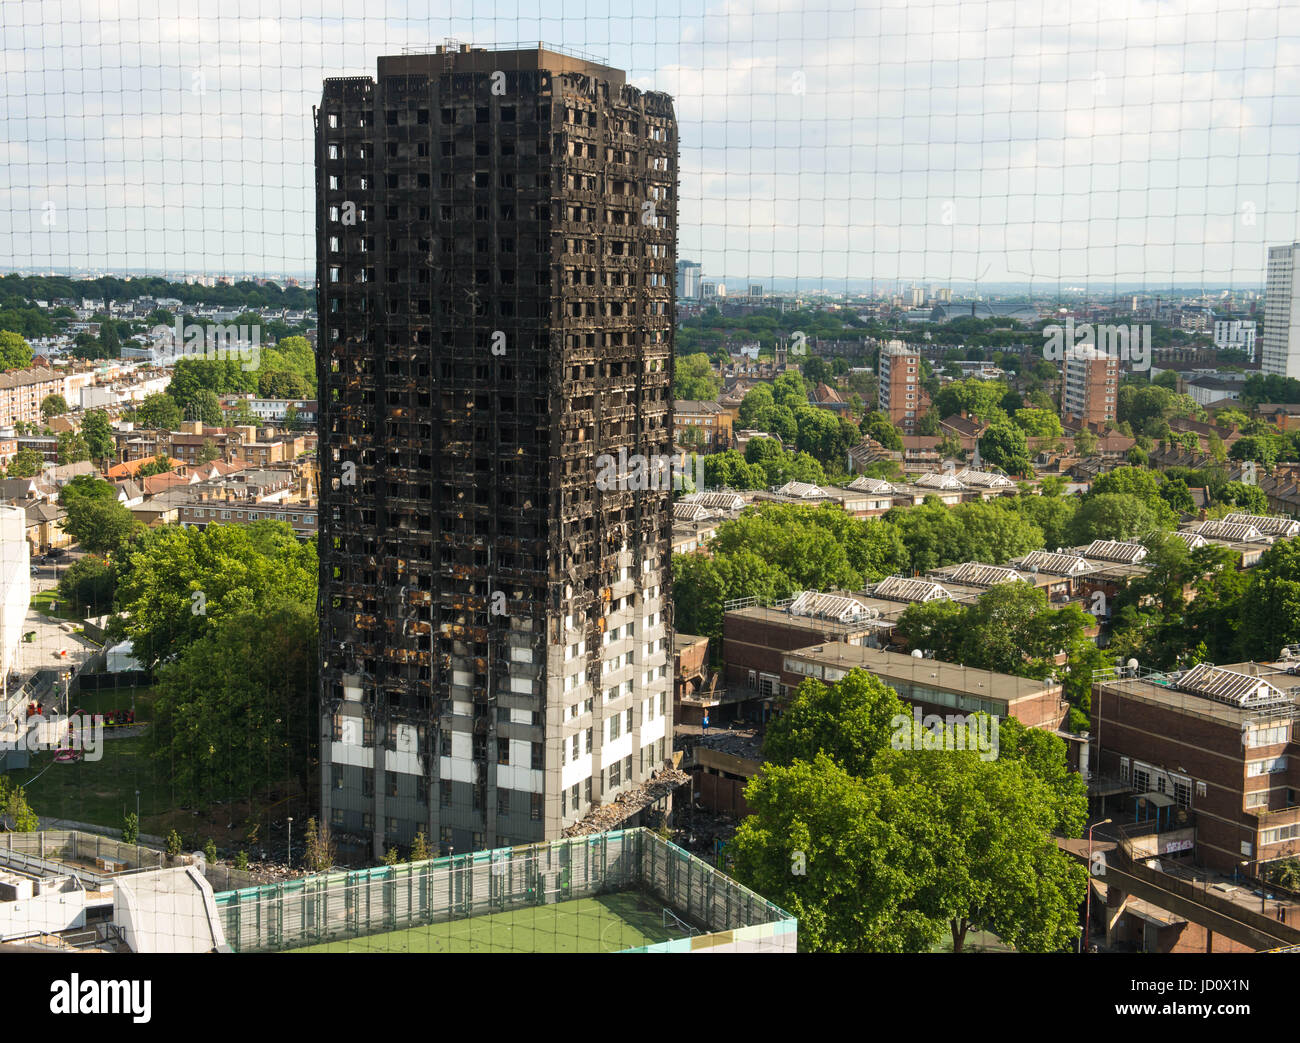 London, United Kingdom. 17th June 2017. The remains of the Grenfell Tower block in Kensington, west London, following - Stock Image